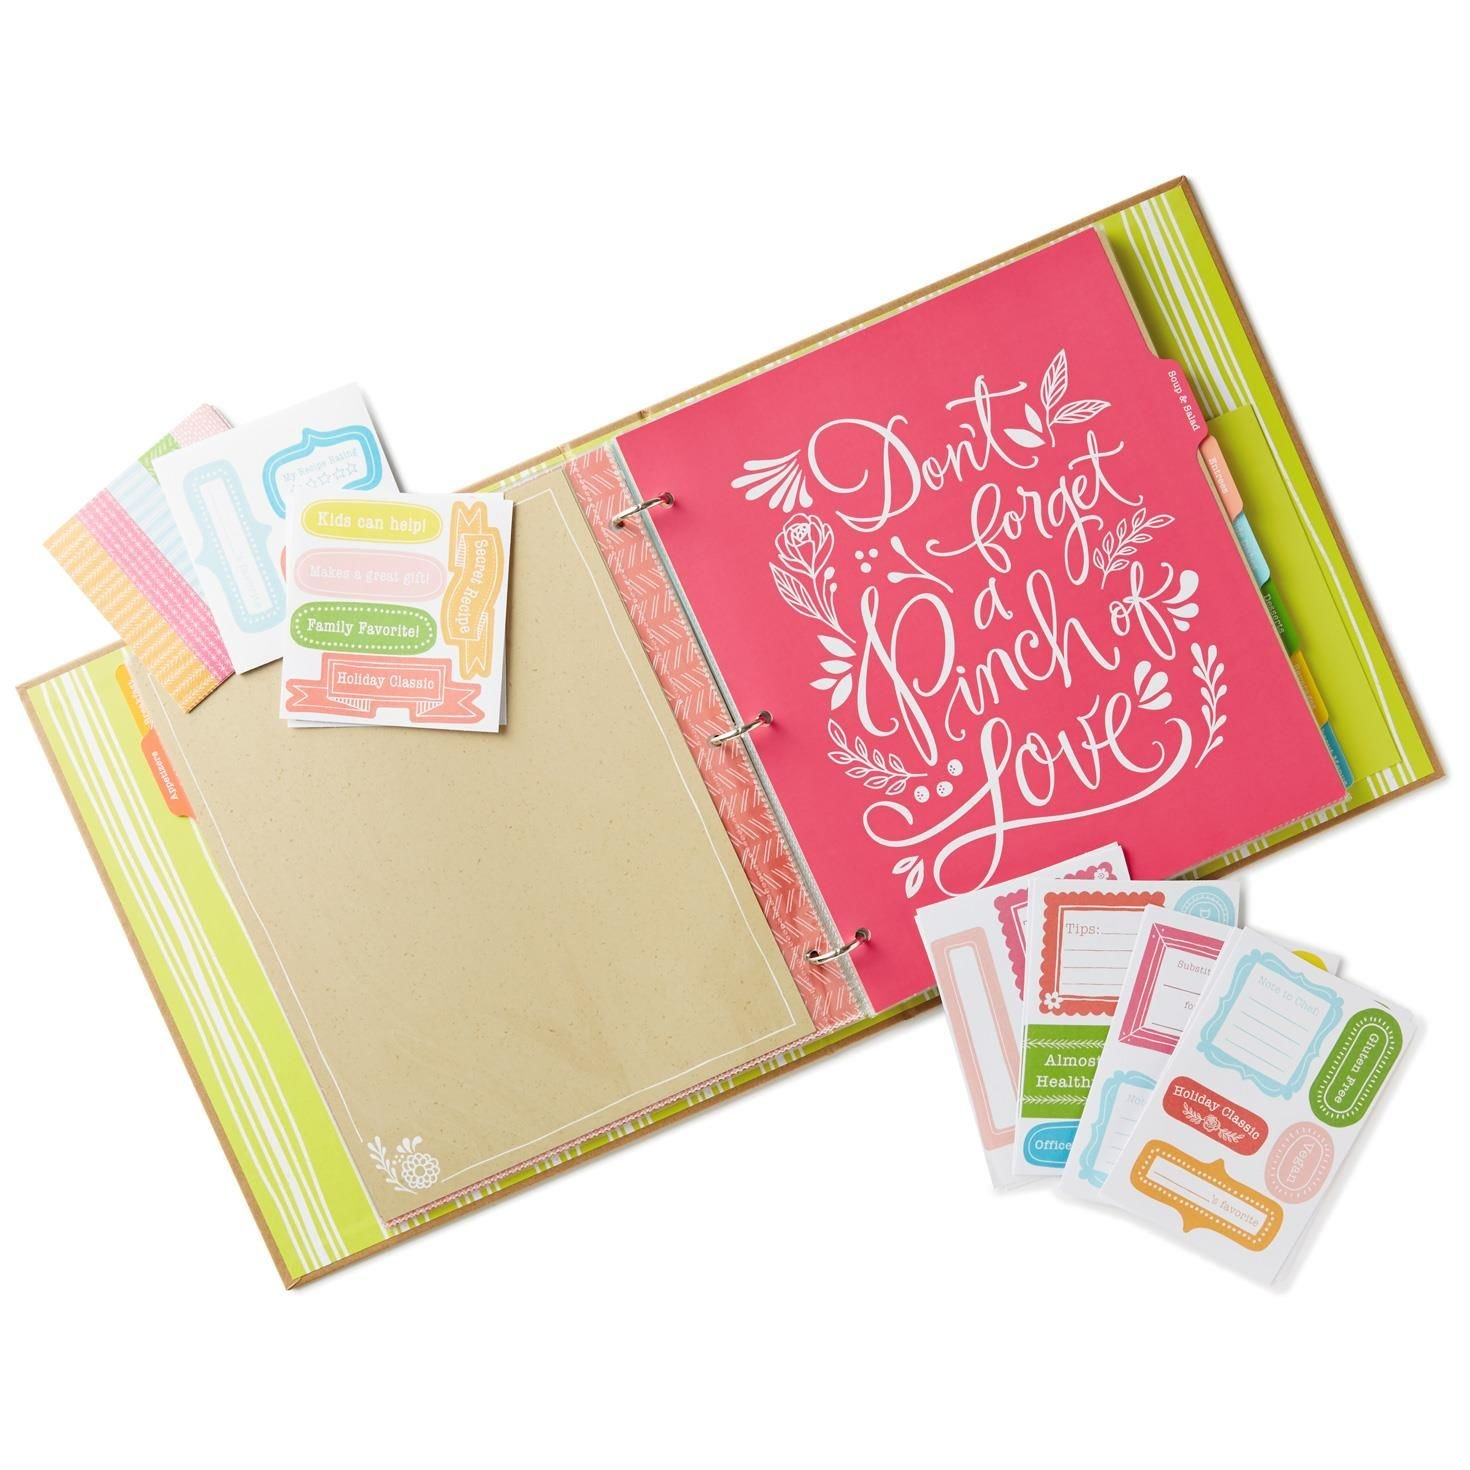 Hope and Biscuits Recipe Book Love Hallmark Faith